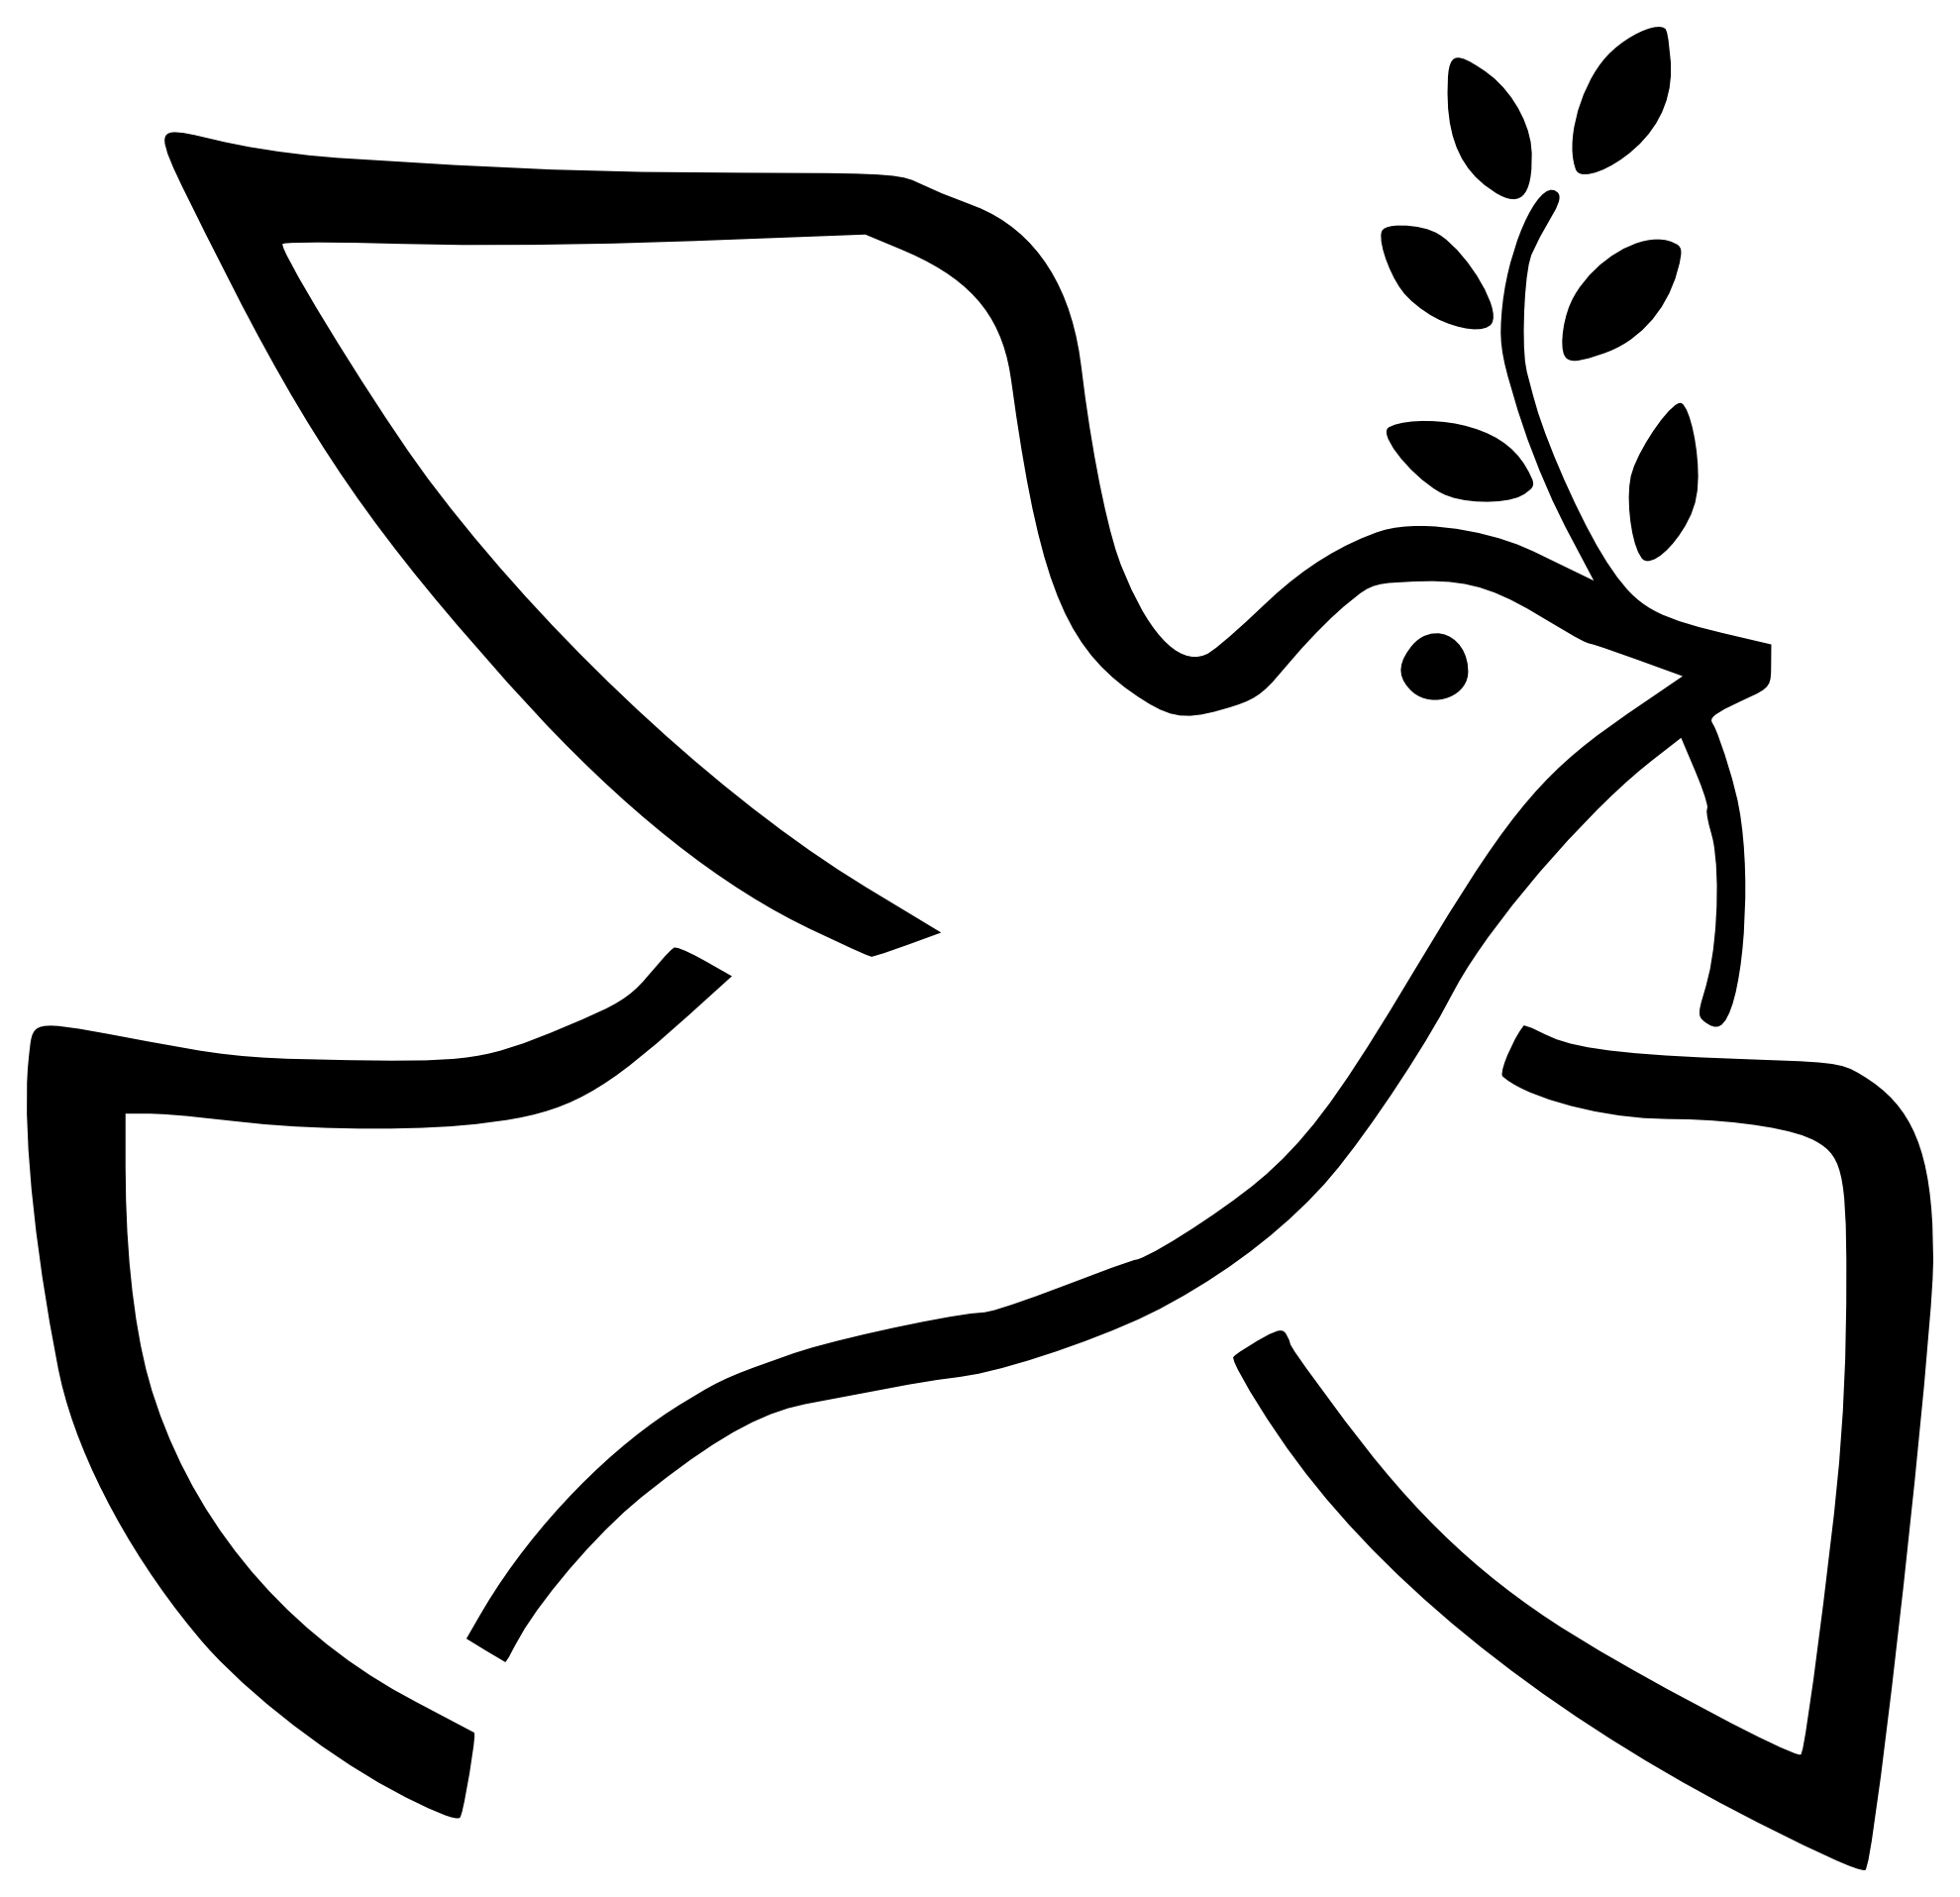 Dove And Cross Clipart.